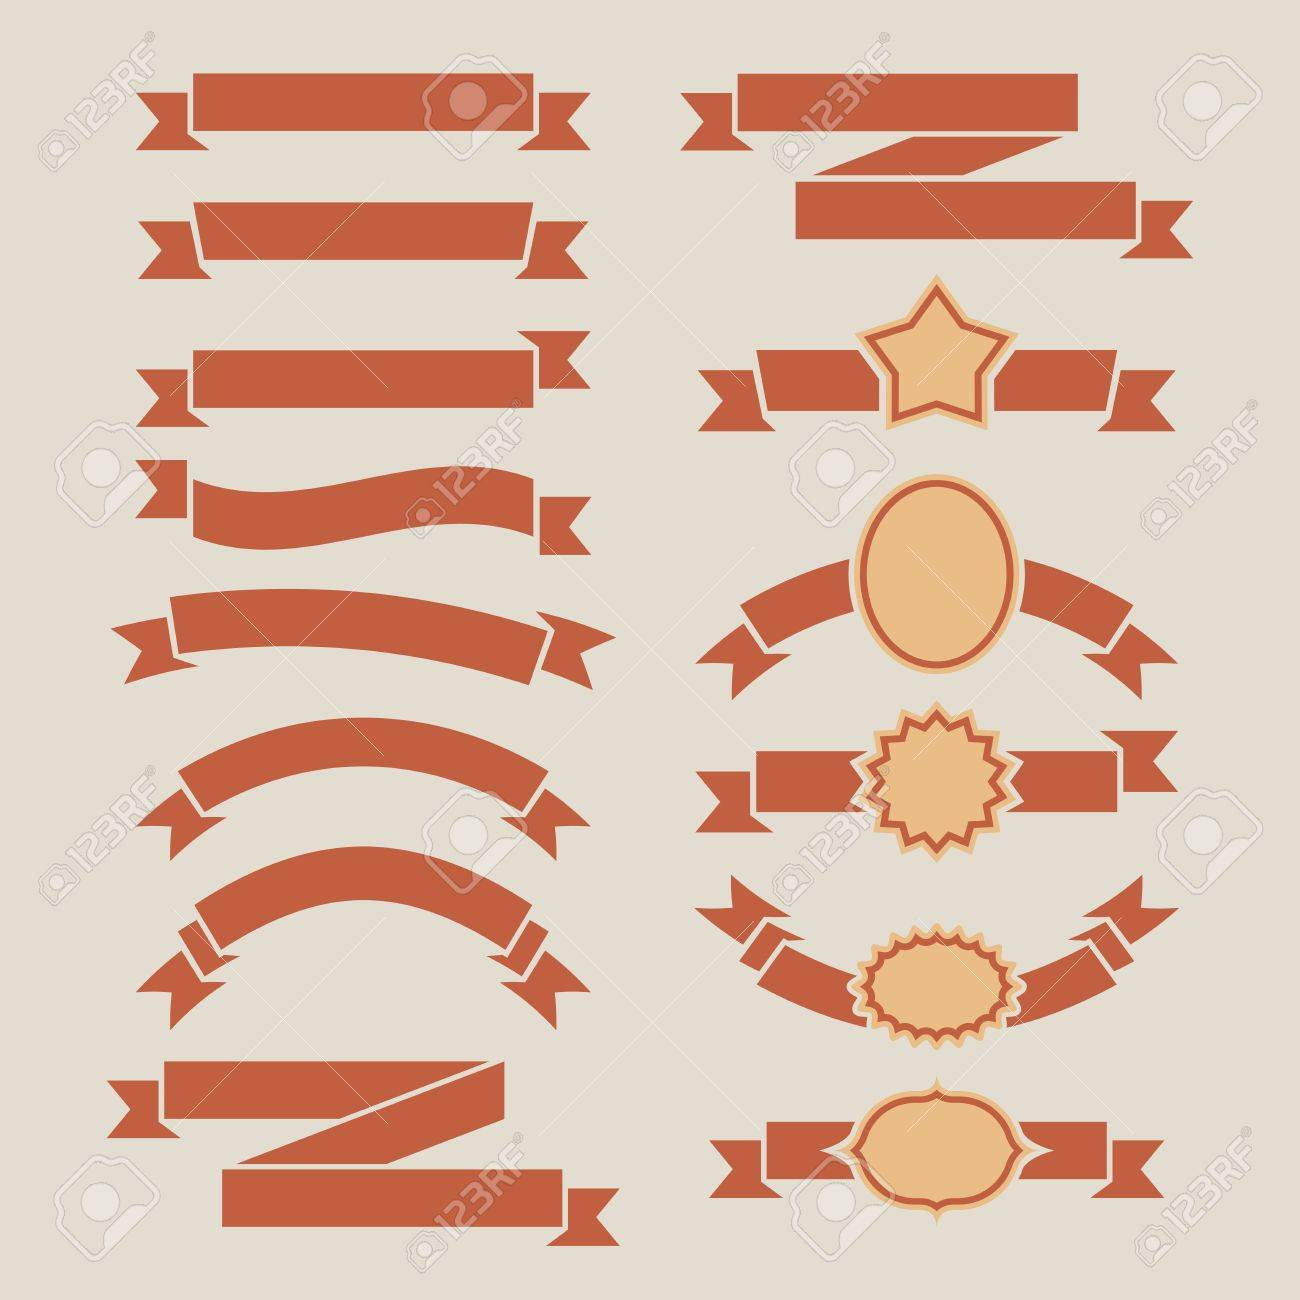 vintage red plain banners vector set isolated on beige background